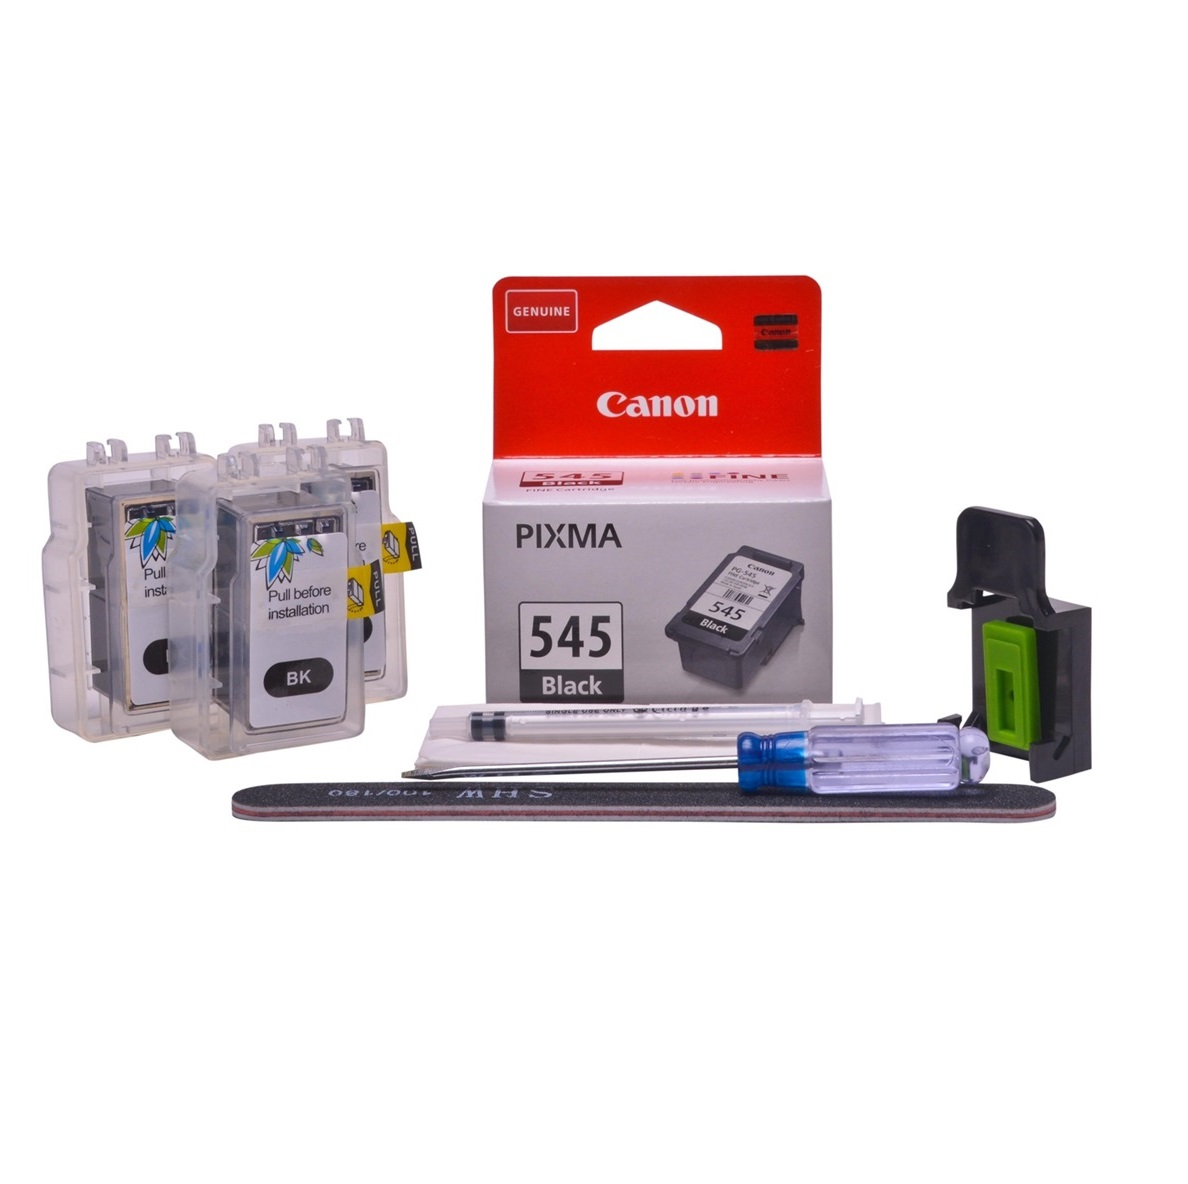 Refillable pigment Cheap printer cartridges for Canon Pixma TS3150 PG-545 PG-545XL Pigment Black